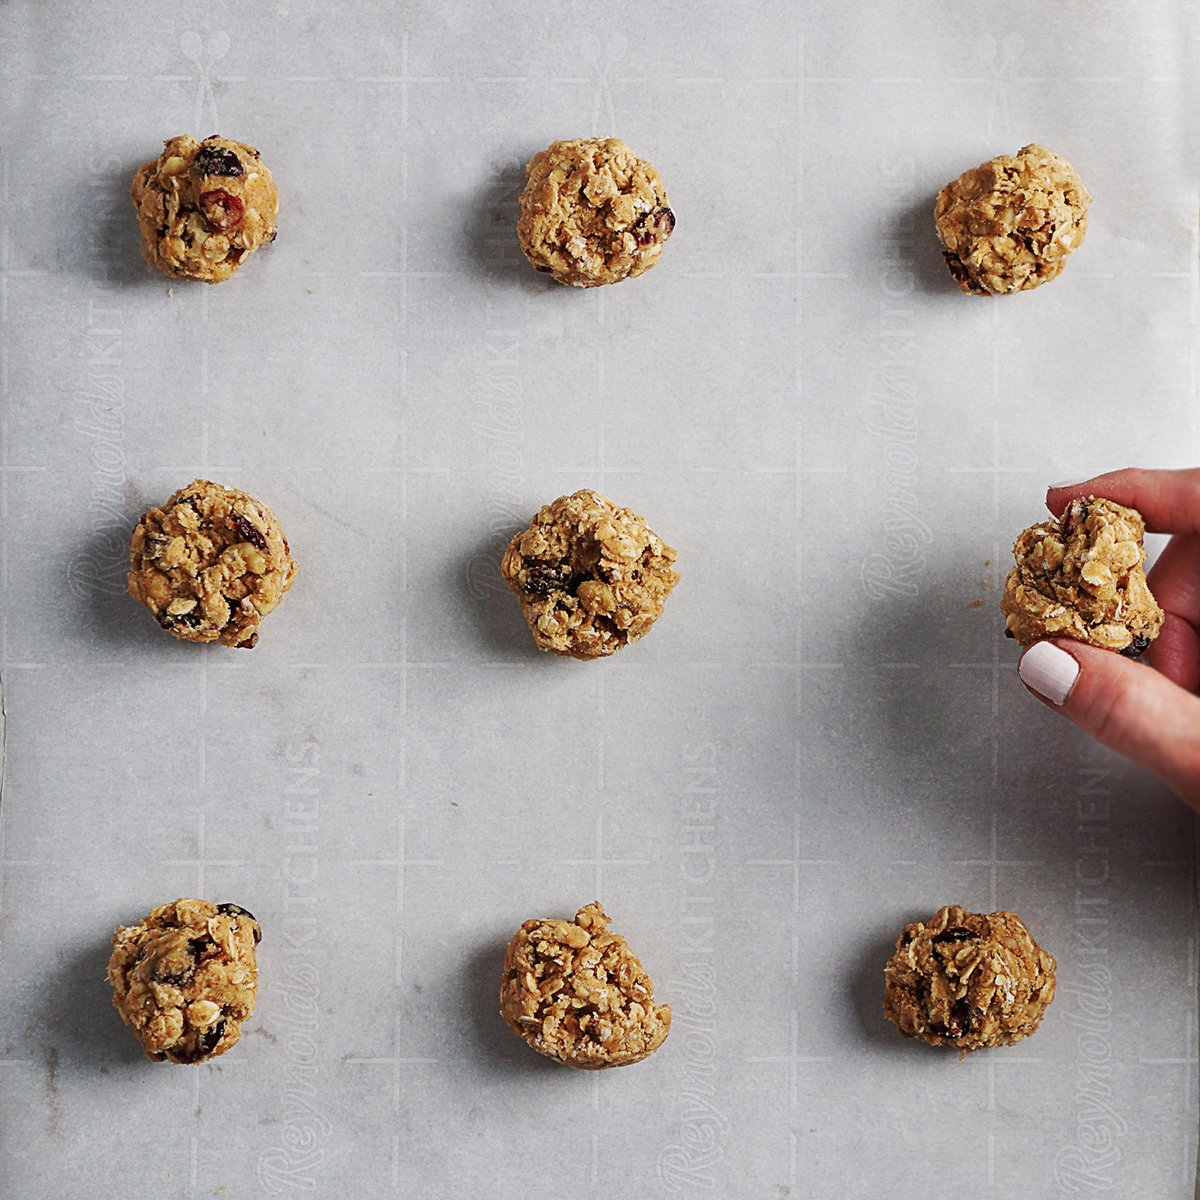 Raw cookie dough balls on a baking tray